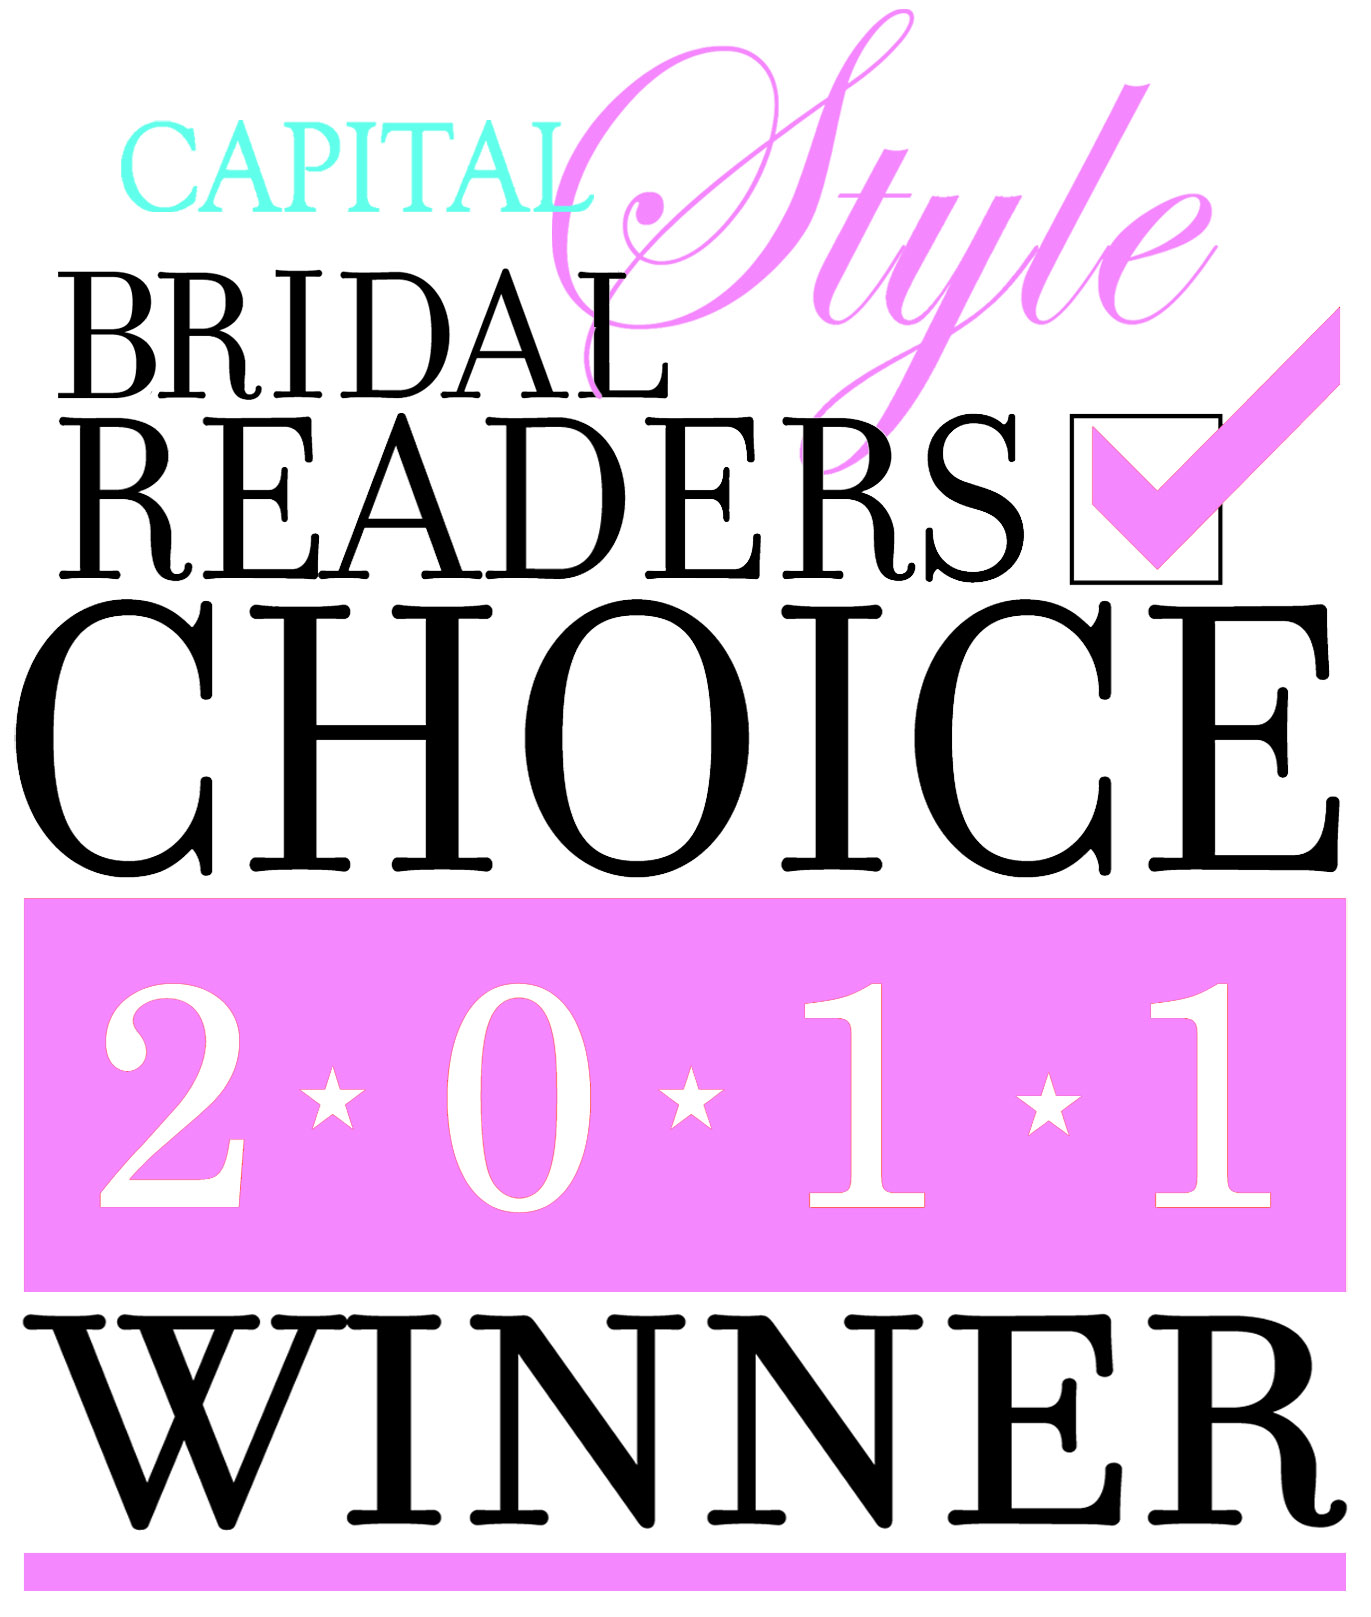 Capital Bridal Readers Choice Winner 2011 Logo